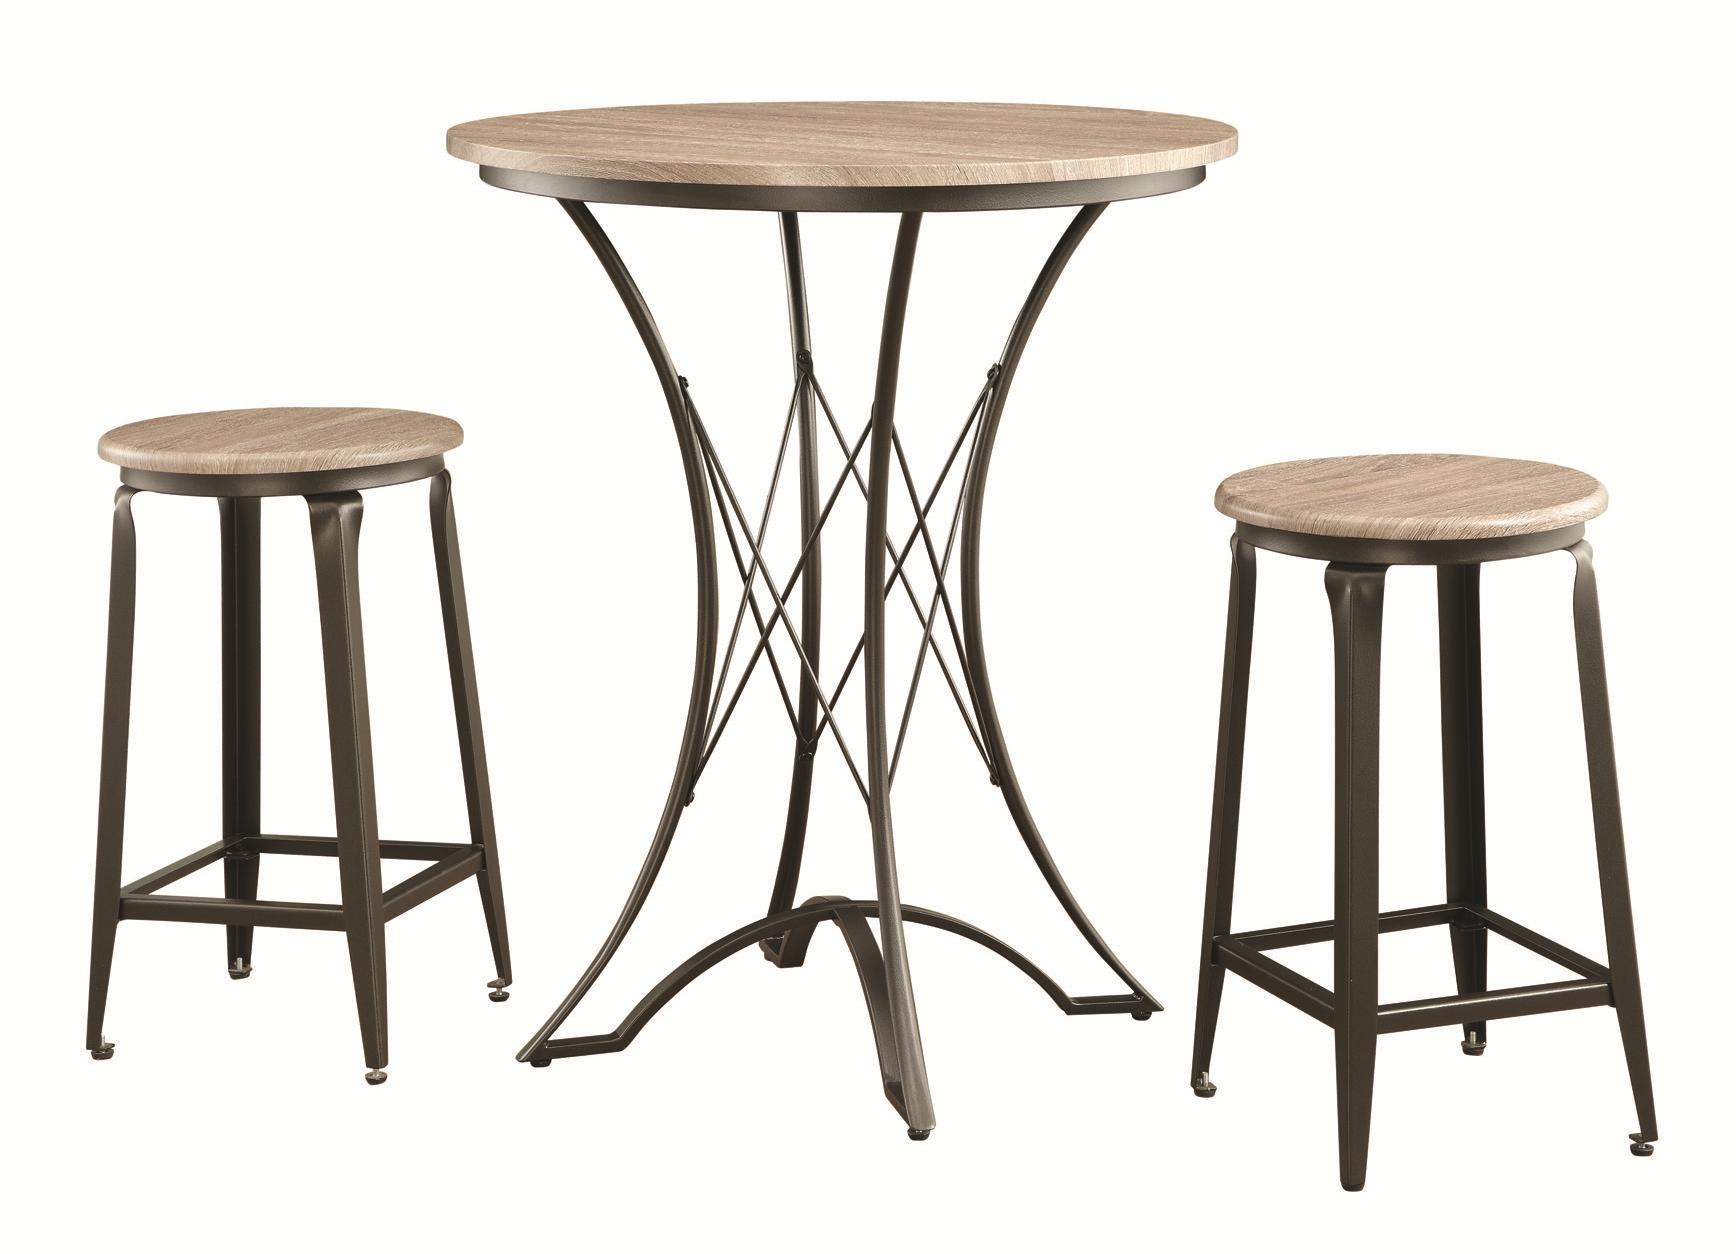 Bar Stools And Table Set Bar Units And Bar Tables 3 Piece Counter Height Table Set